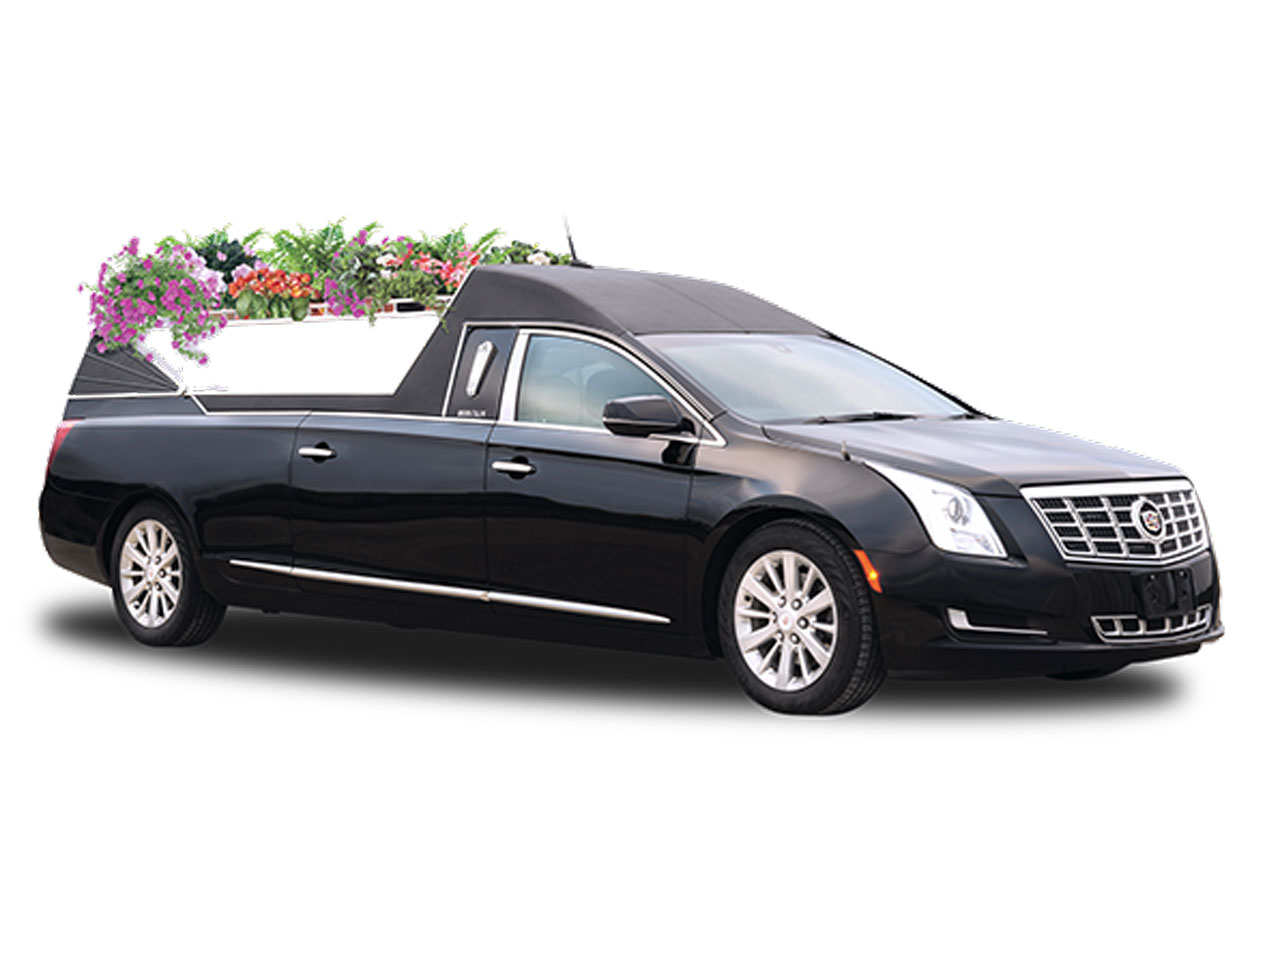 2019 Platinum Coach Cortege Flower Car 3